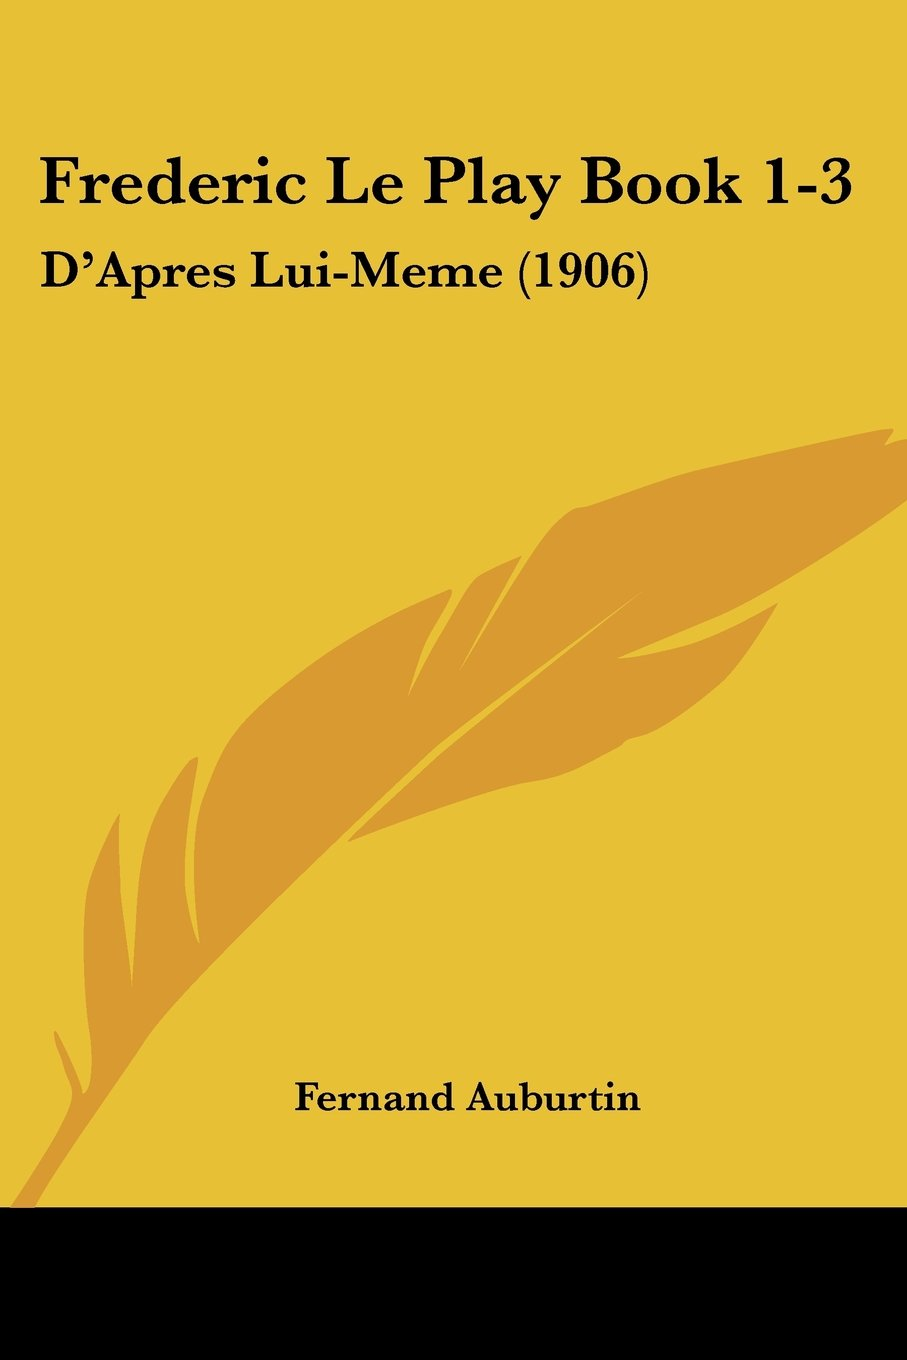 Download Frederic Le Play Book 1-3: D'Apres Lui-Meme (1906) (French Edition) PDF